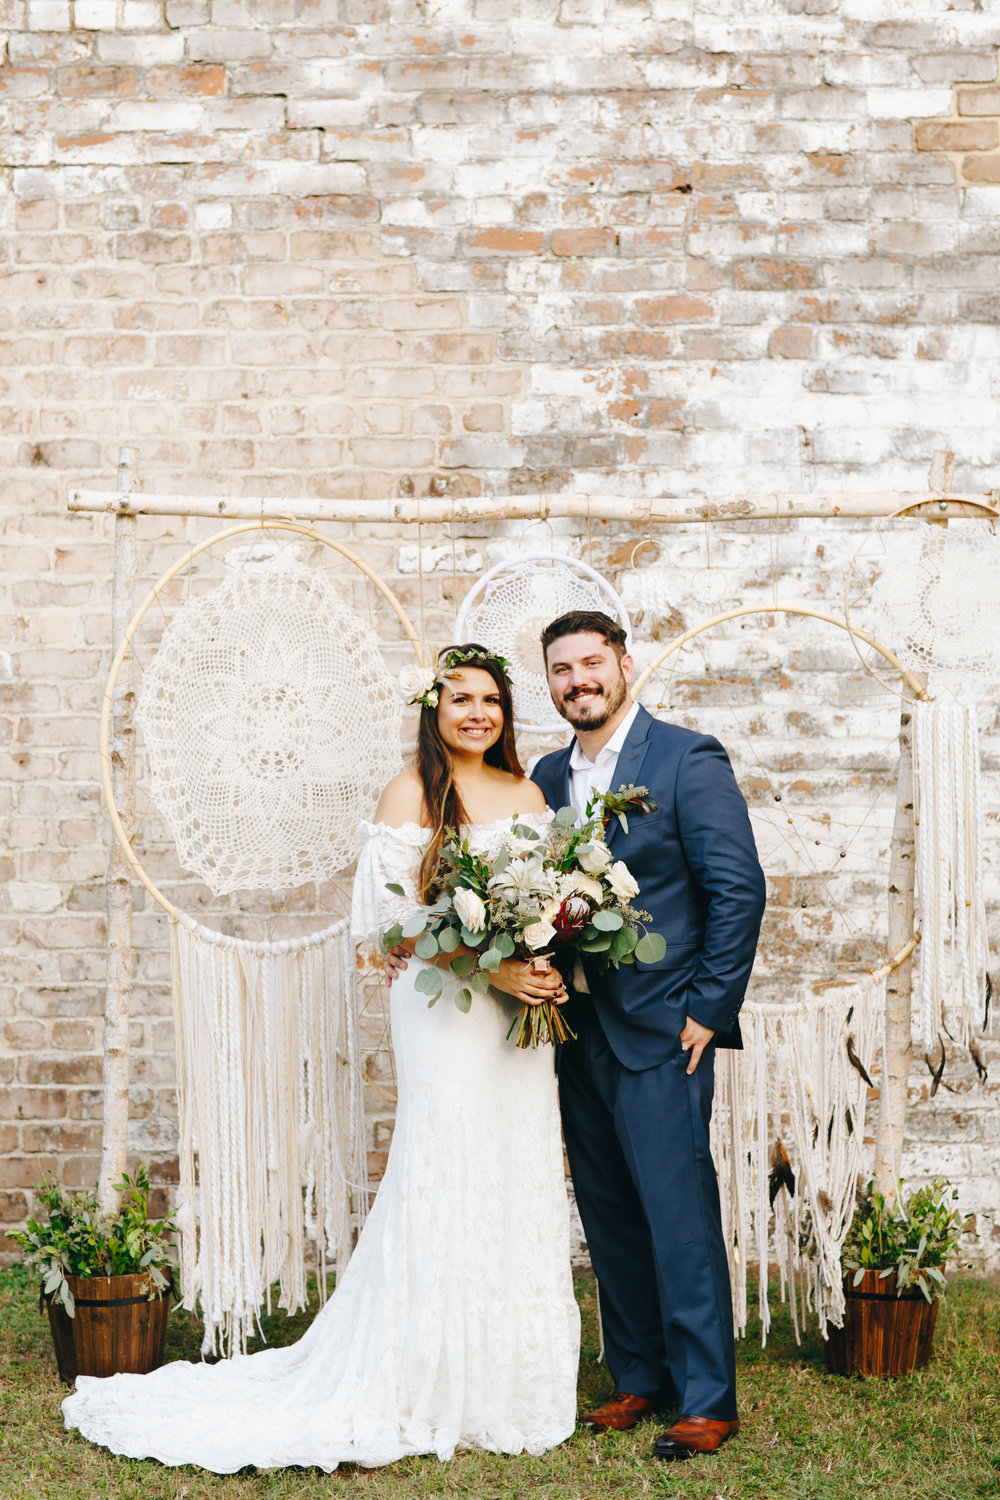 darling-juliet-photography-ivory-and-beau-bridal-boutique-savannah-wedding-dresses-savannah-bridal-gowns-daughters-of-simone-winnie-savannah-florist-boho-wedding-savannah-boho-wedding-roundhouse-railroad-musuem-wedding-30.jpg